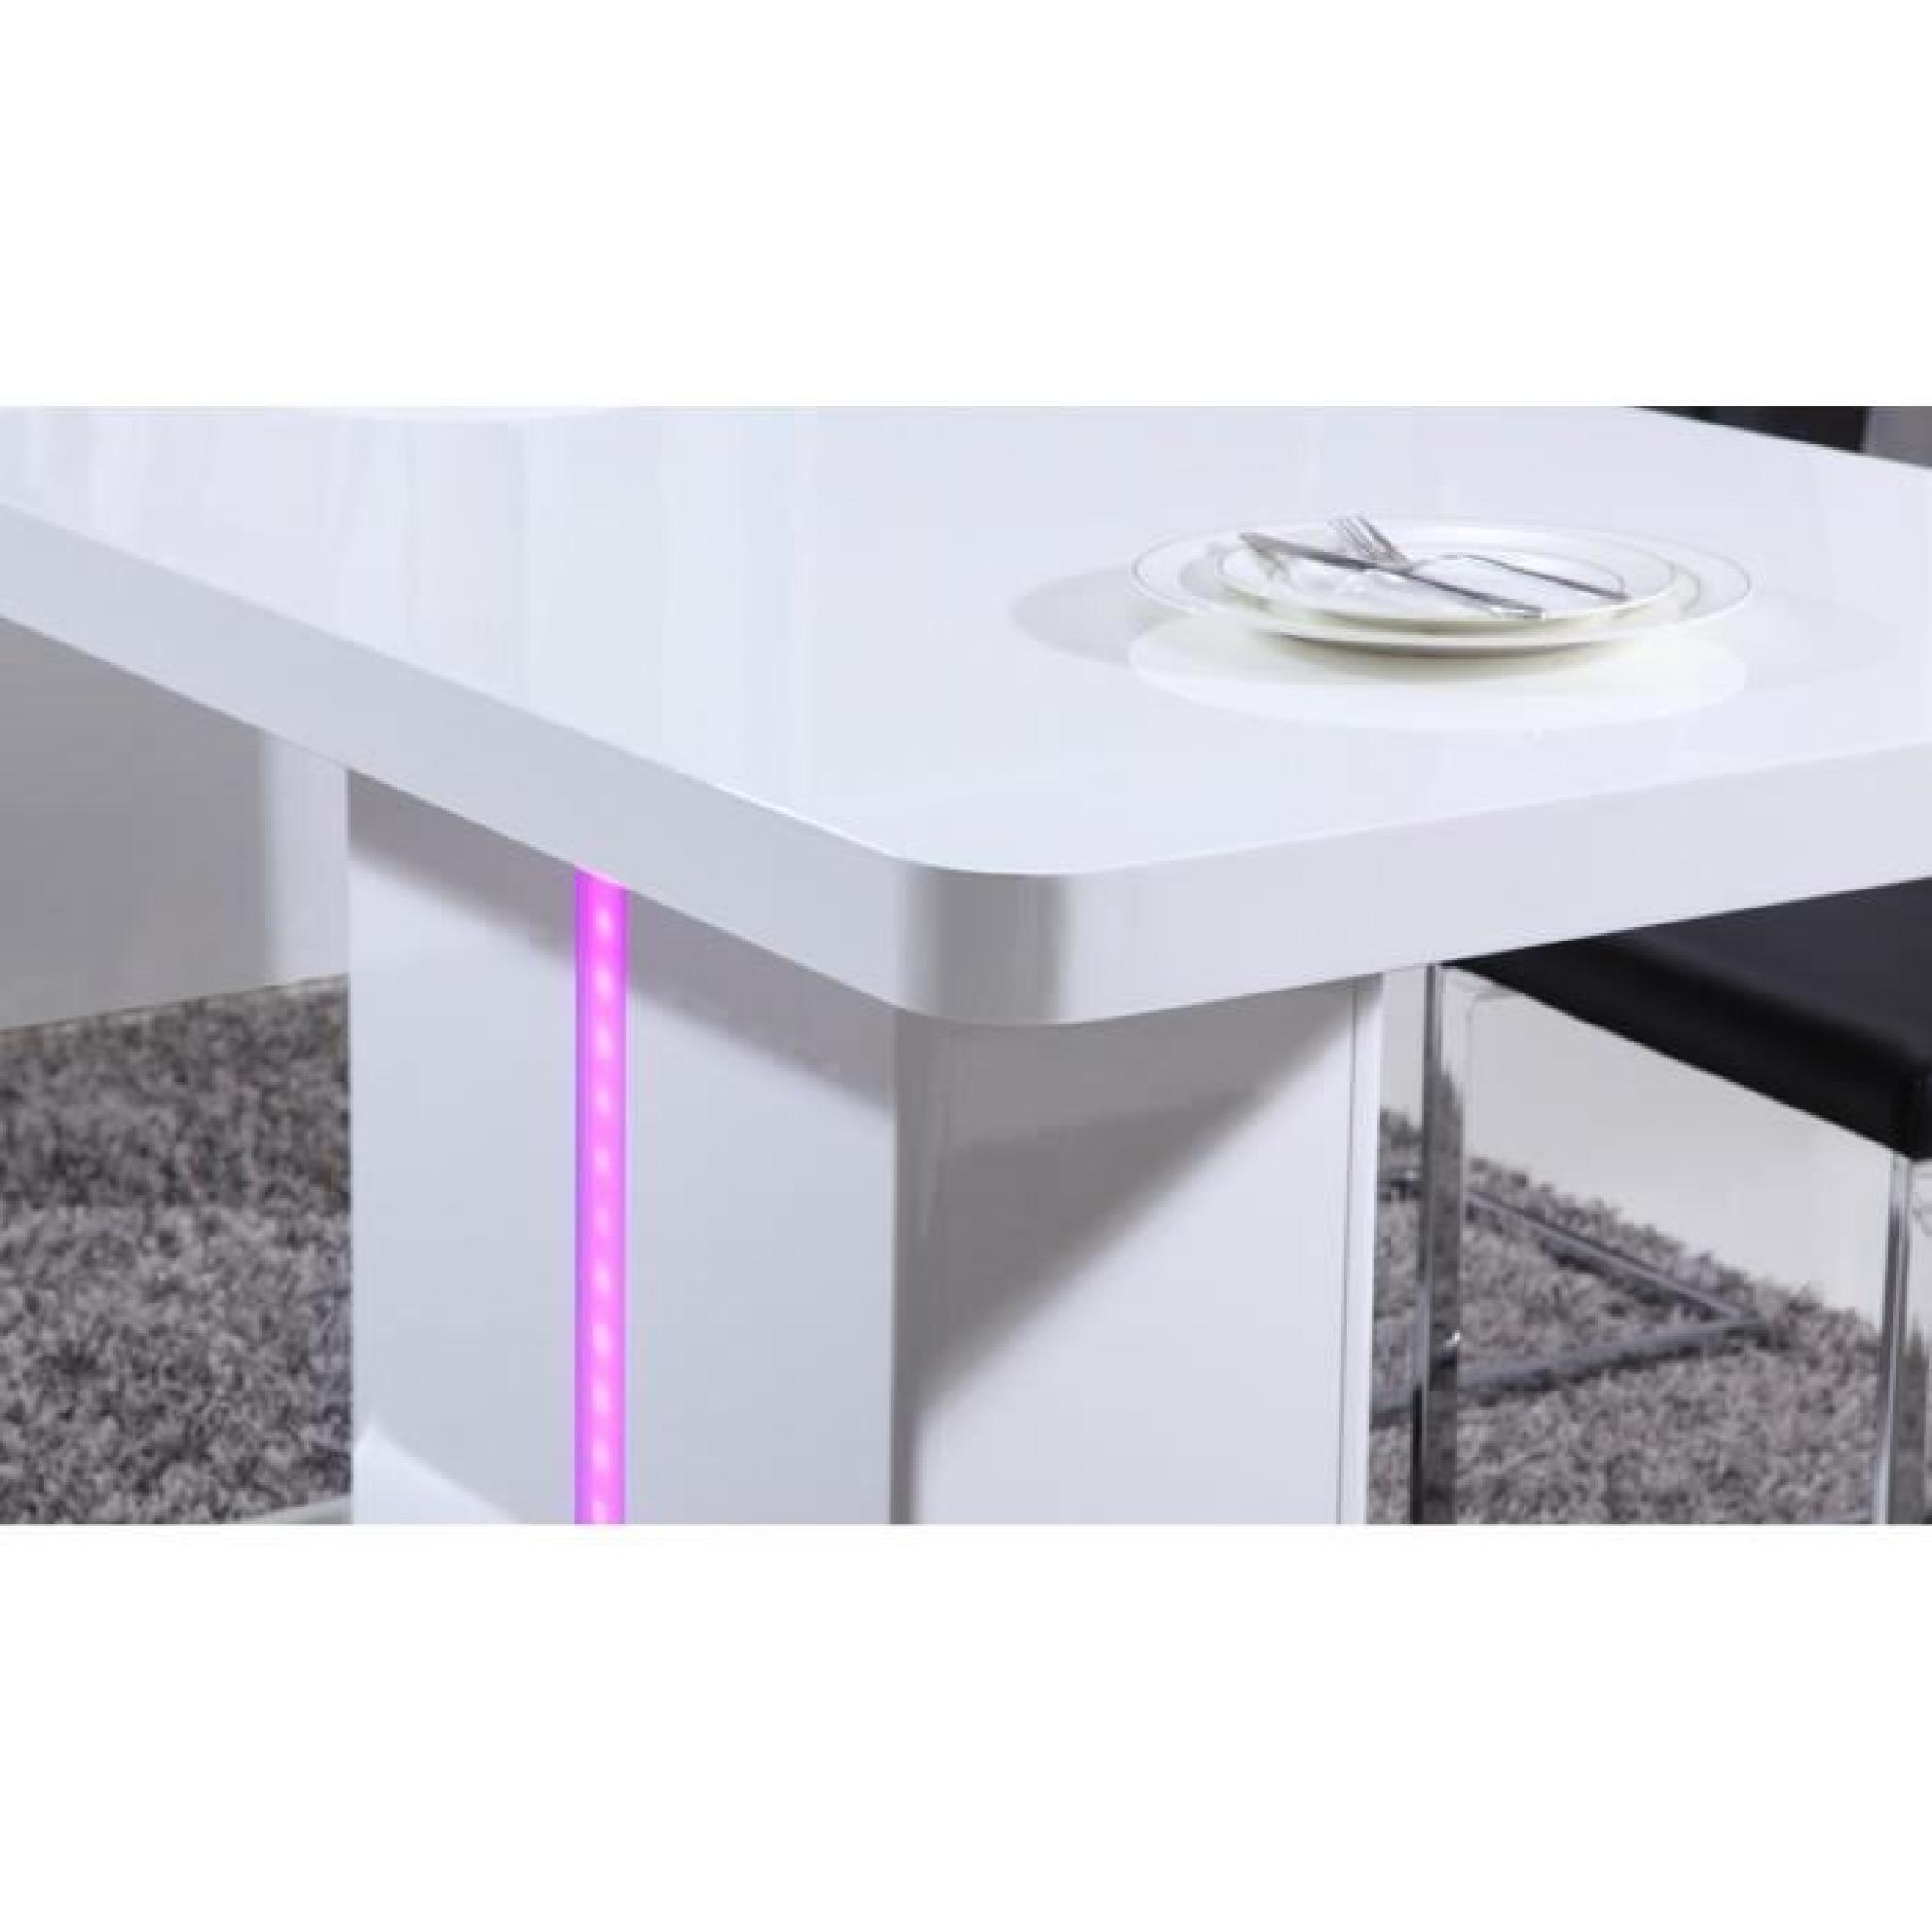 Table laqu blanc conforama table basse grise avec for Table basse modulable conforama